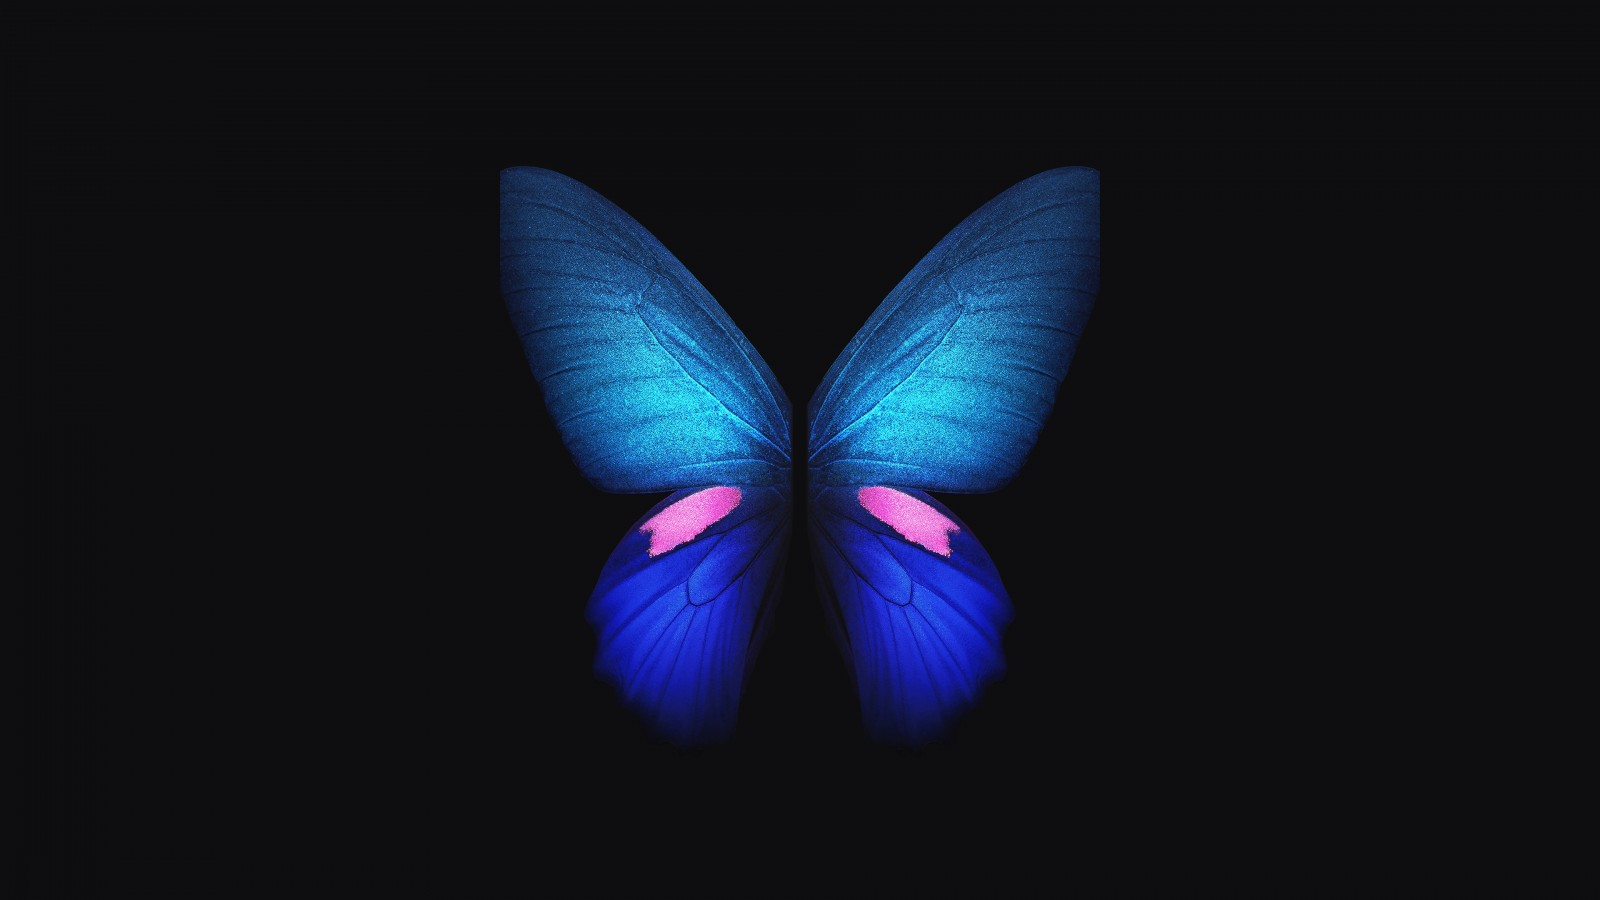 Iphone 5s Wallpaper Galaxy Samsung Galaxy Fold Blue Butterfly 4k Wallpapers Hd